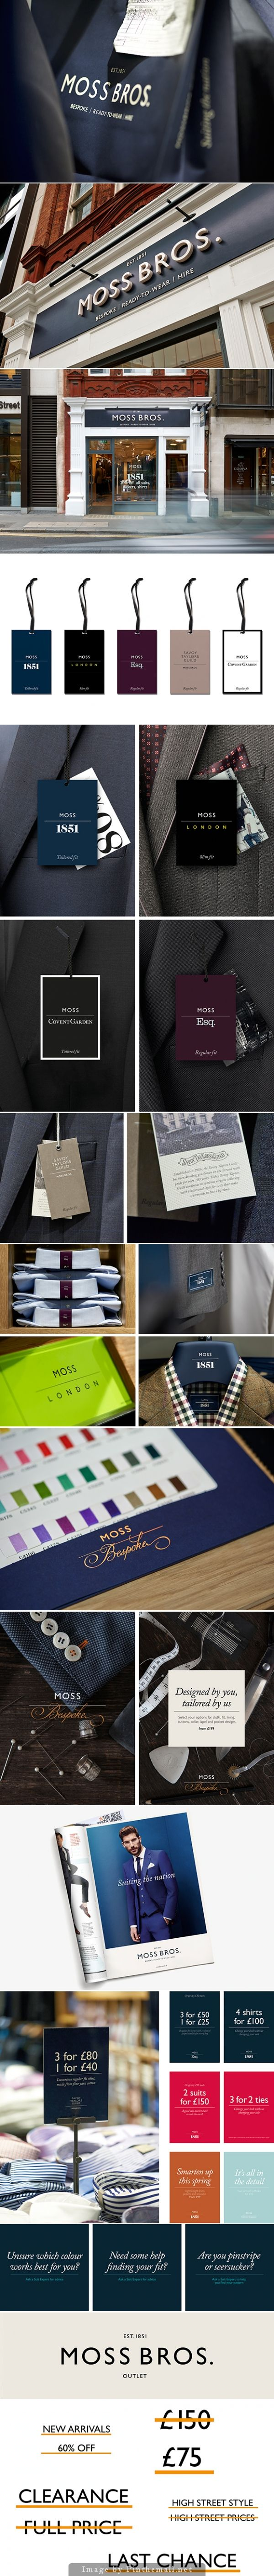 Moss Bros by Pentagram - created via http://pinthemall.net